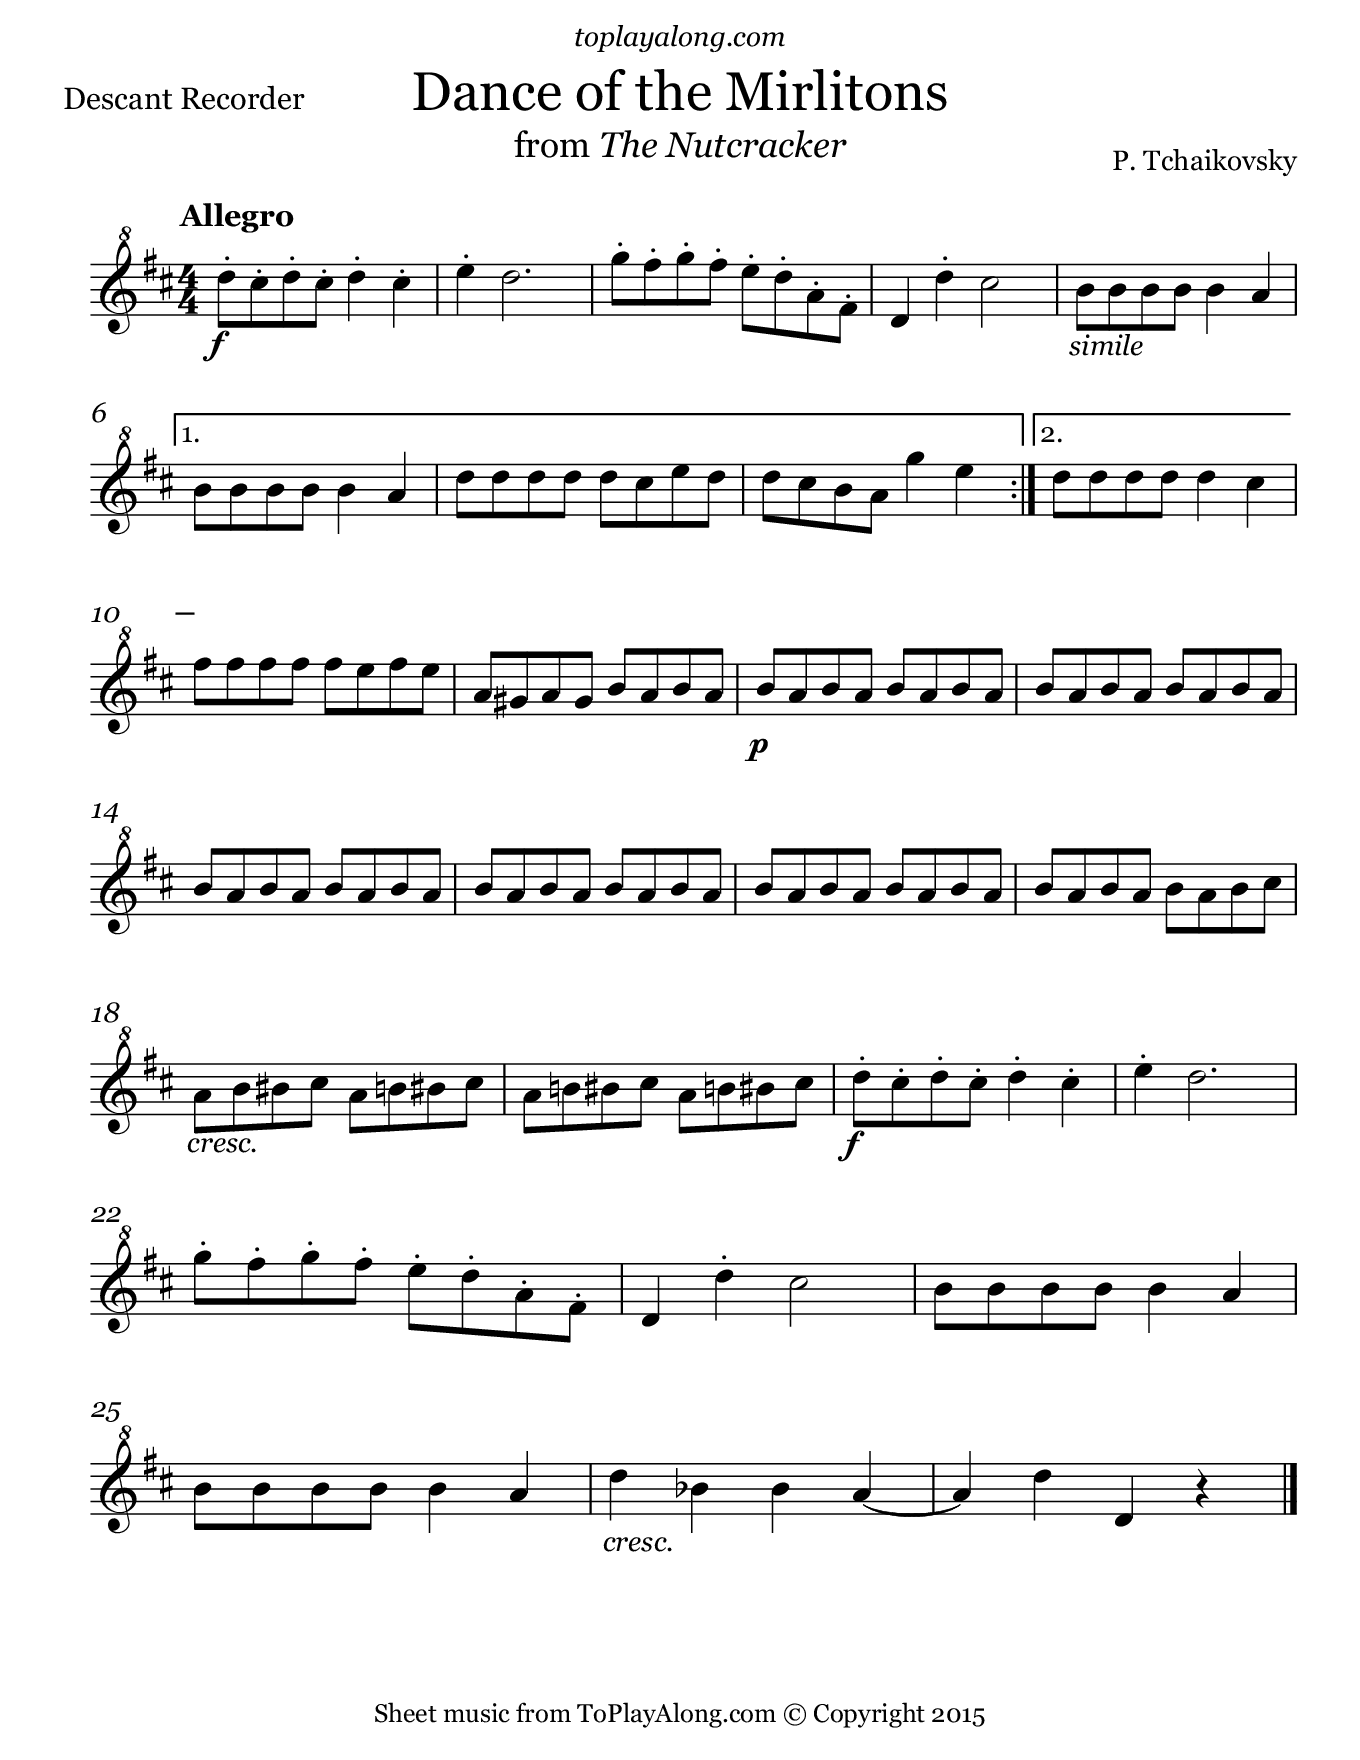 Dance of the Mirlitons from The Nutcracker by Tchaikovsky. Sheet music for Recorder, page 1.